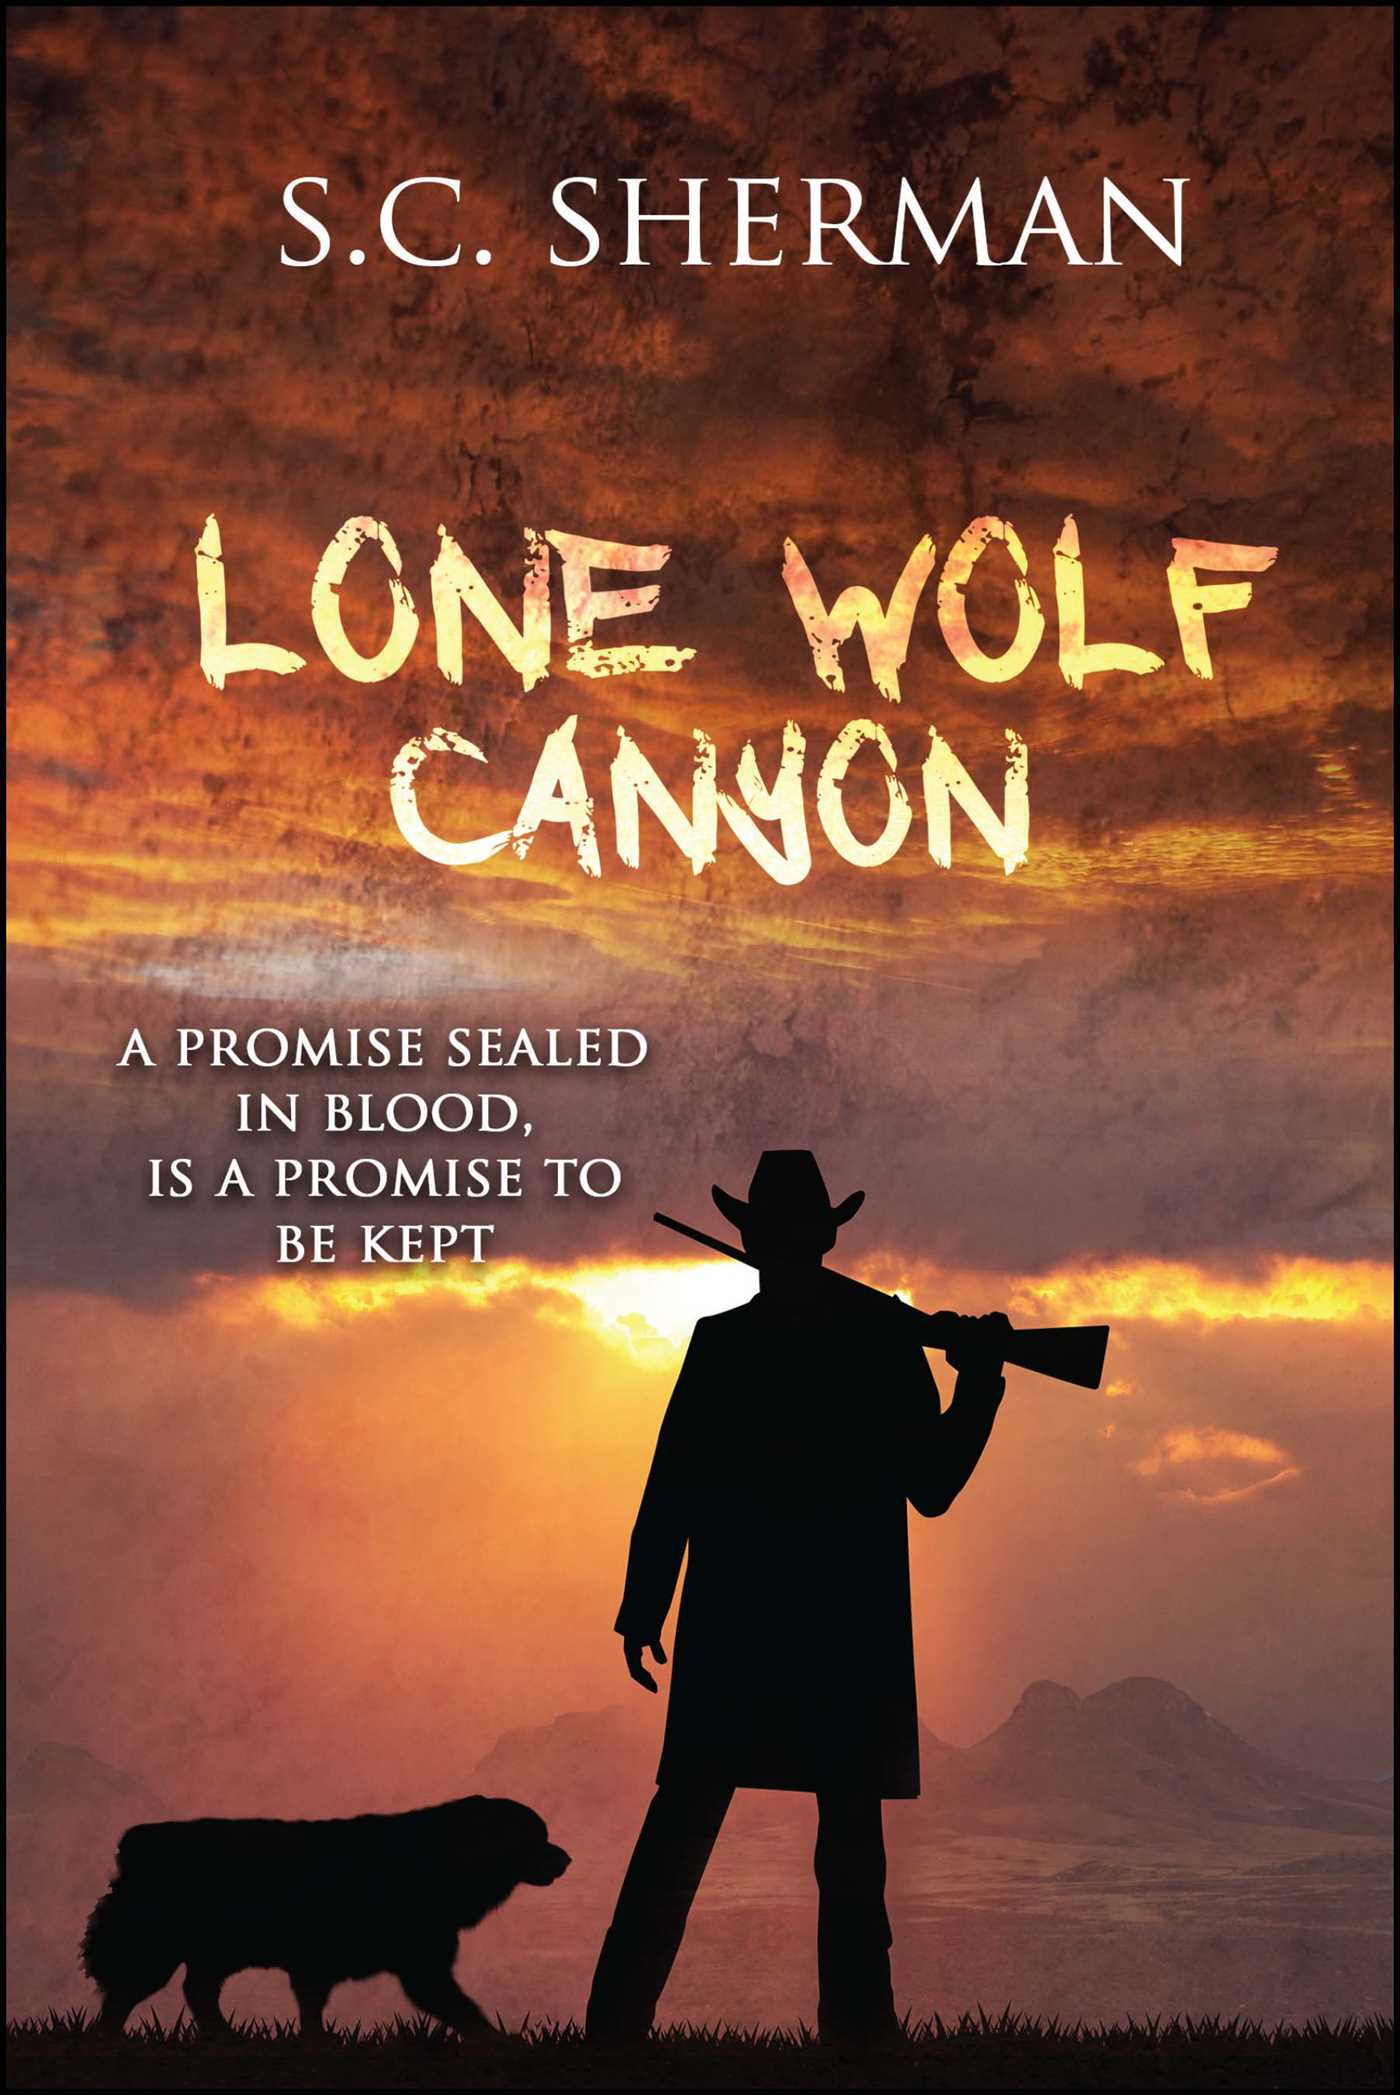 Lone wolf canyon 9781682615492 hr